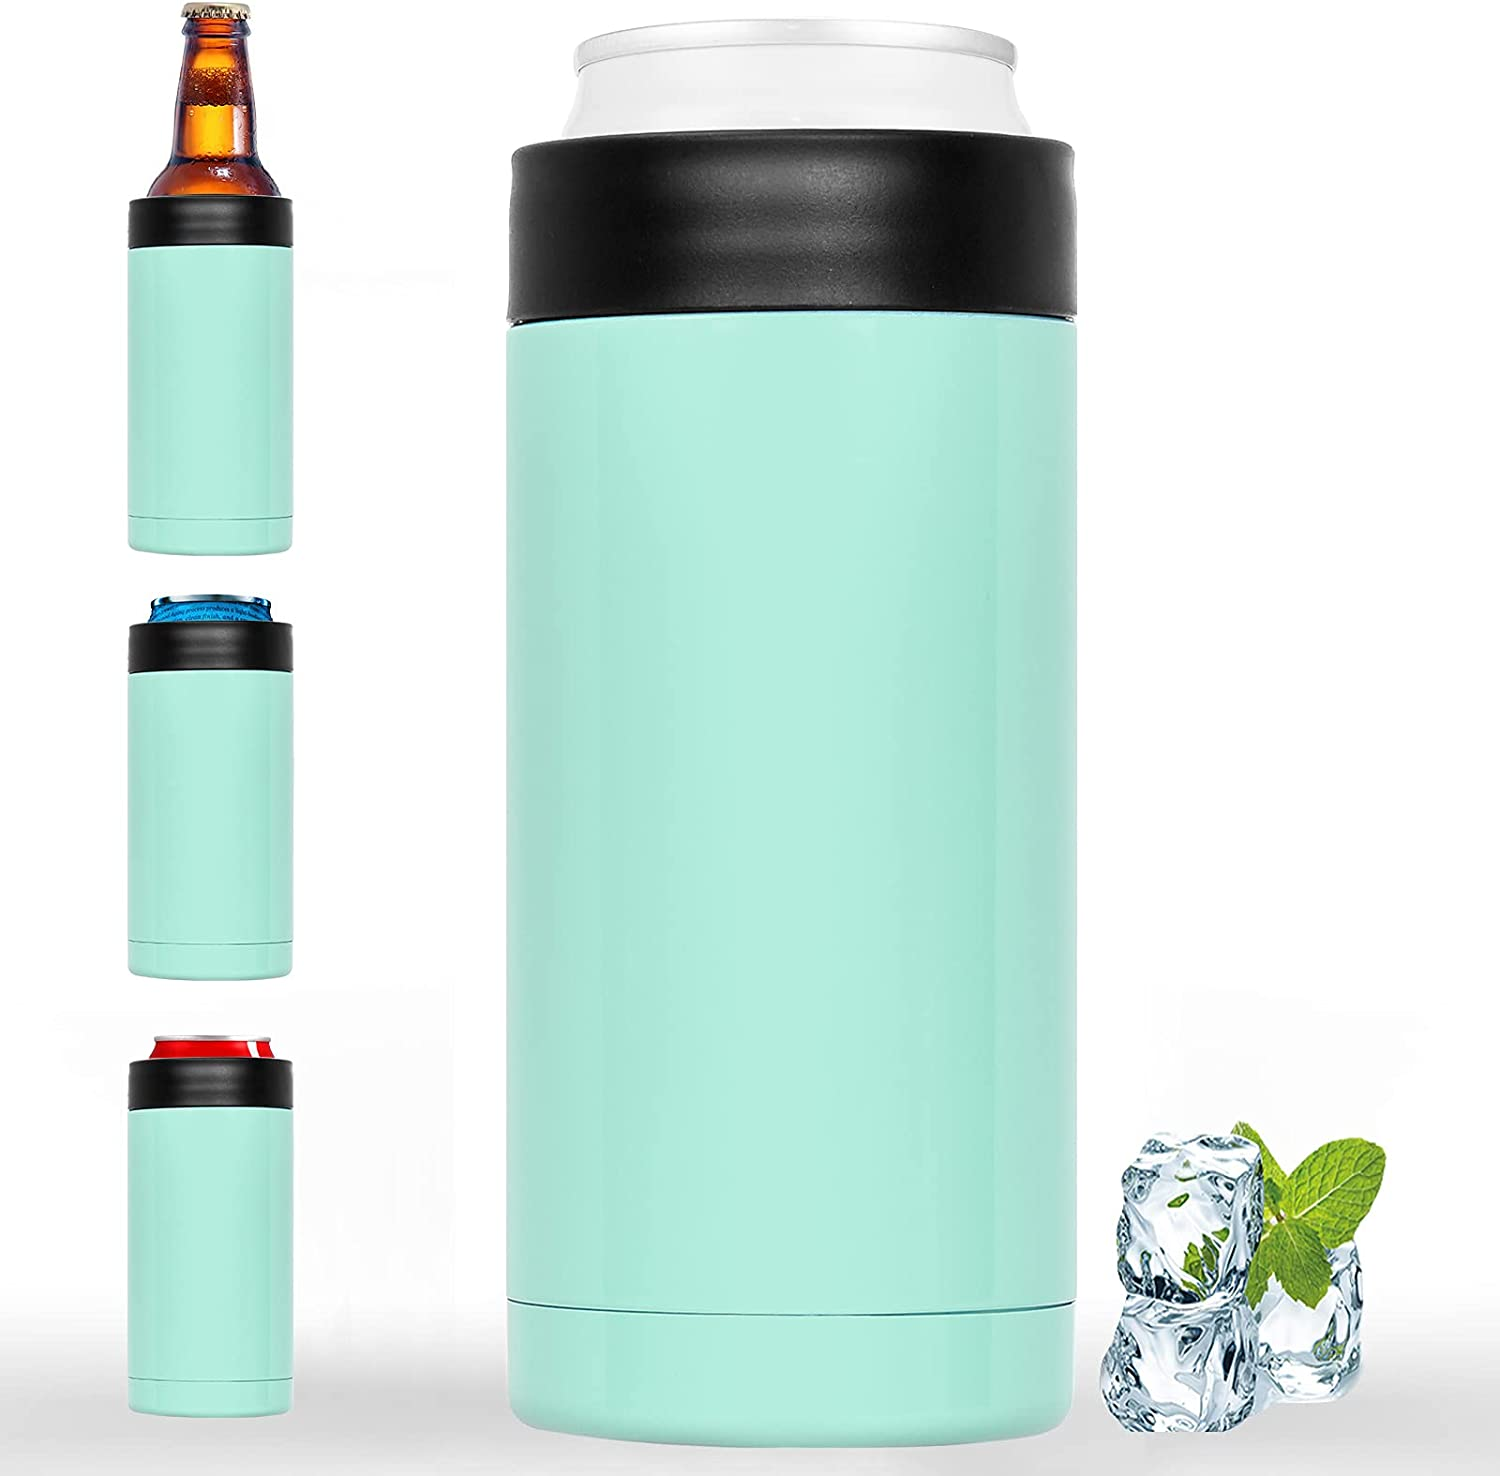 Double-walled shop OFFicial Stainless Steel Insulated Can Cooler Fits 16oz